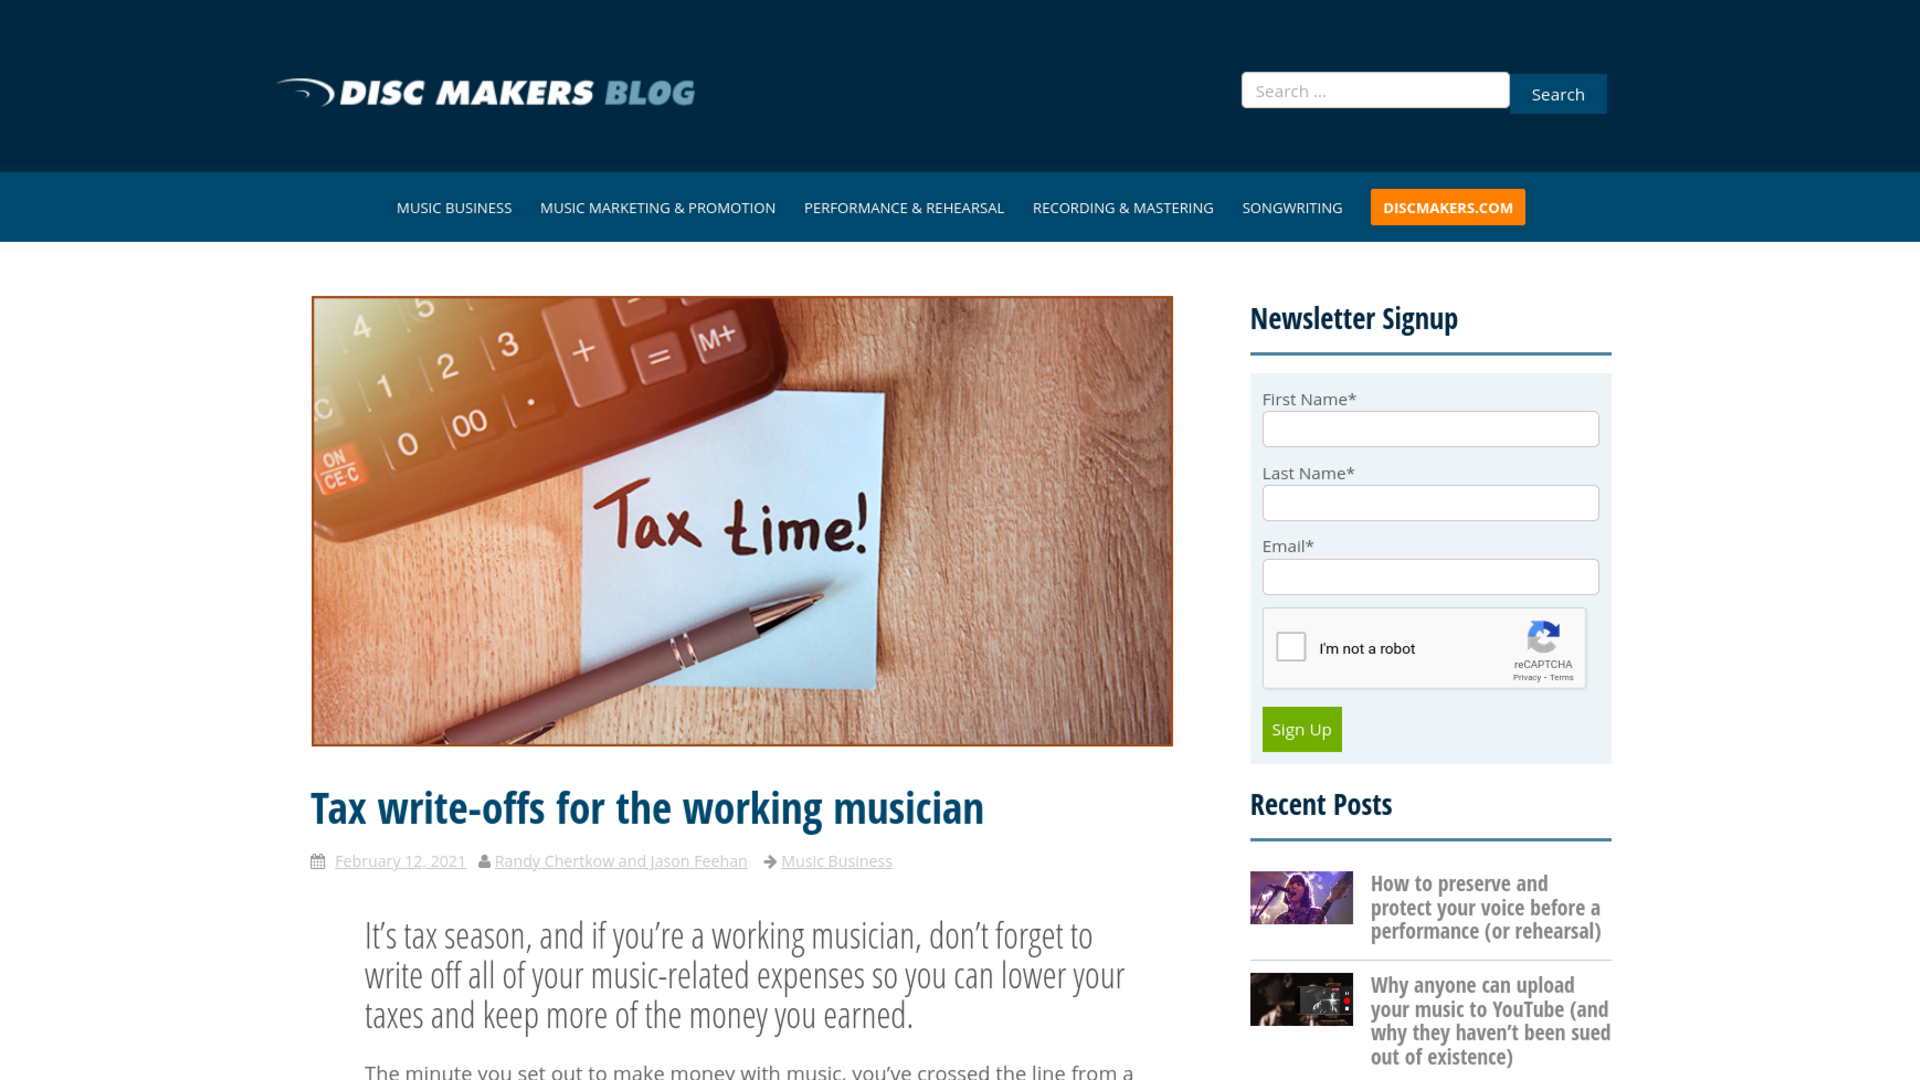 Fairness Rocks News Tax write-offs for the working musician